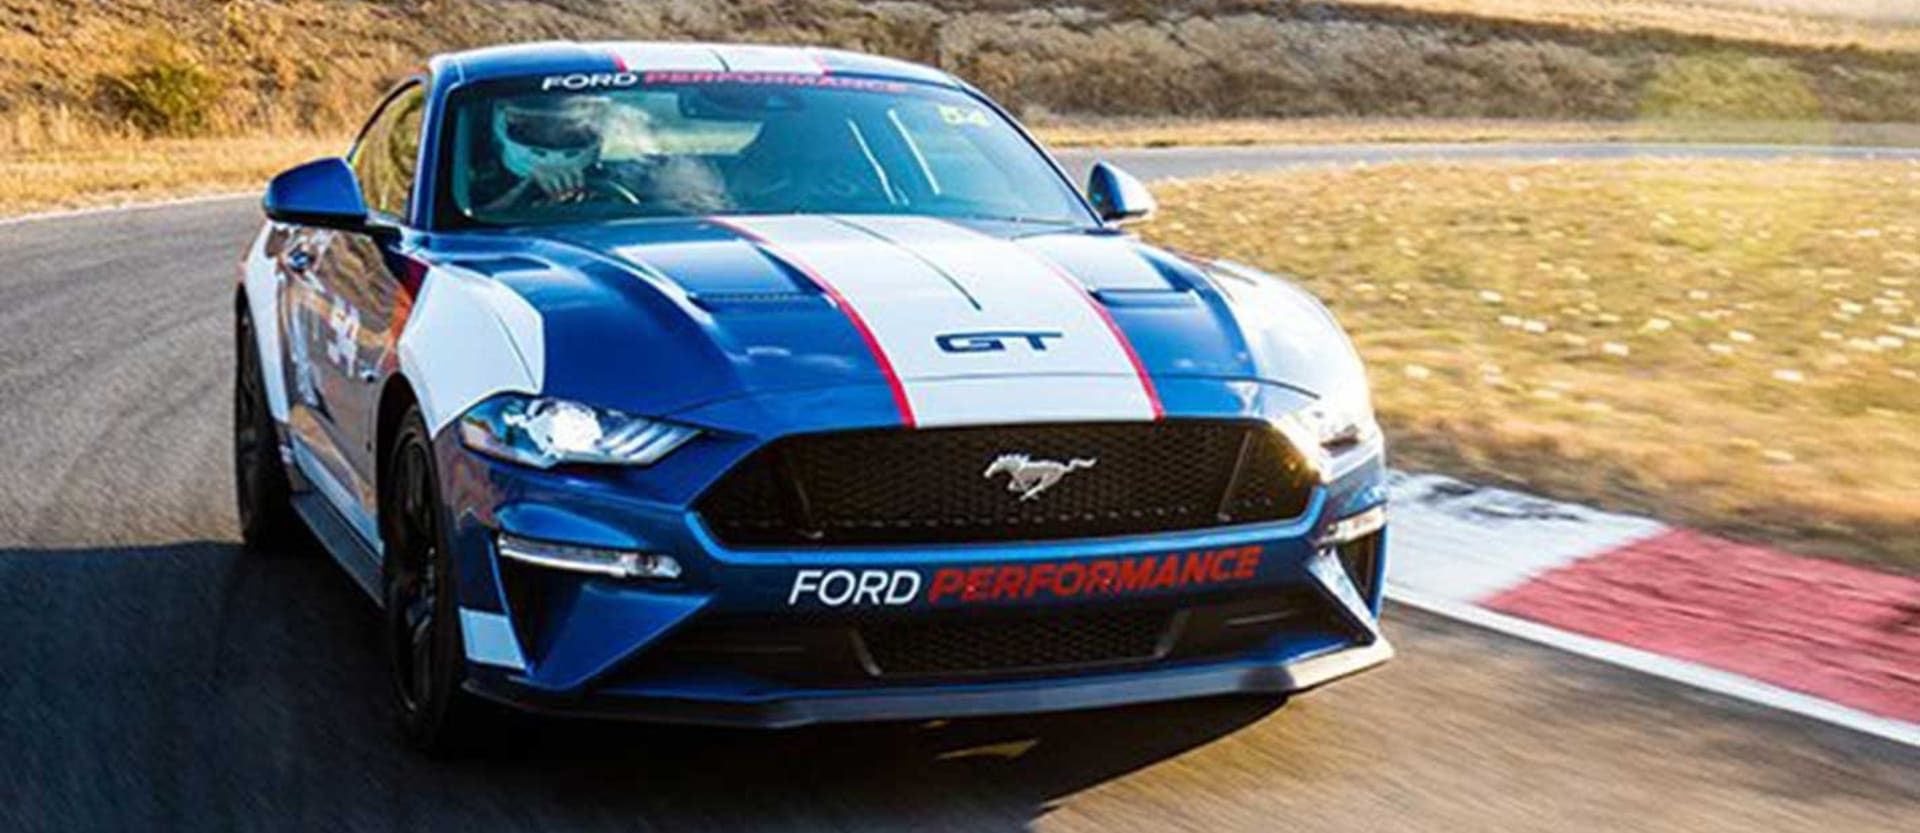 ford mustang to enter supercars racing